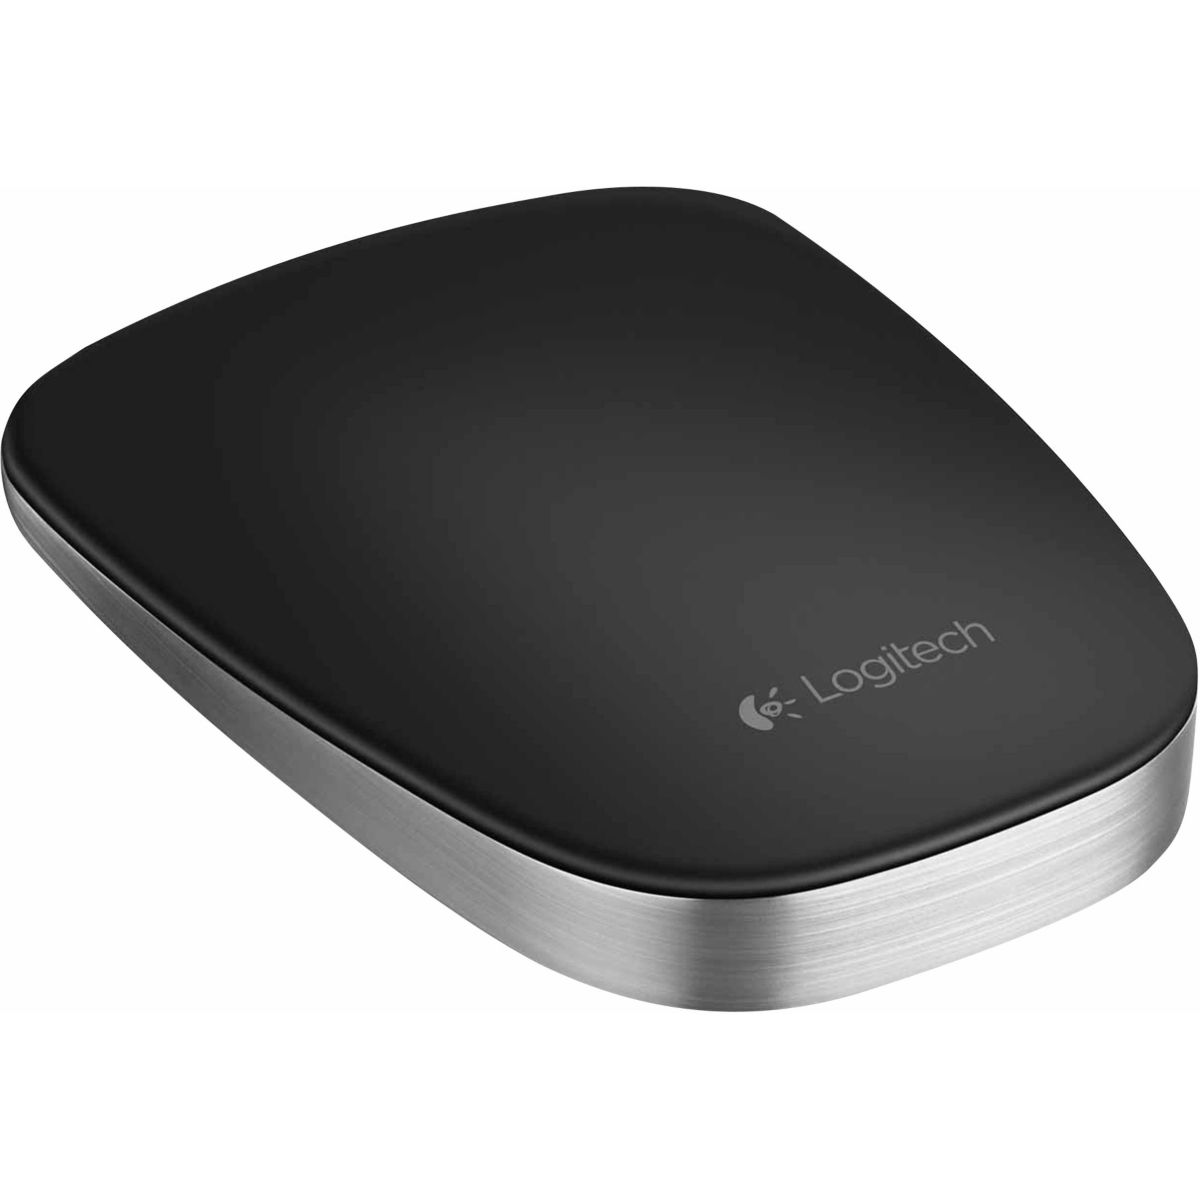 Souris sans fil LOGITECH T630 UltraThin TouchMouse